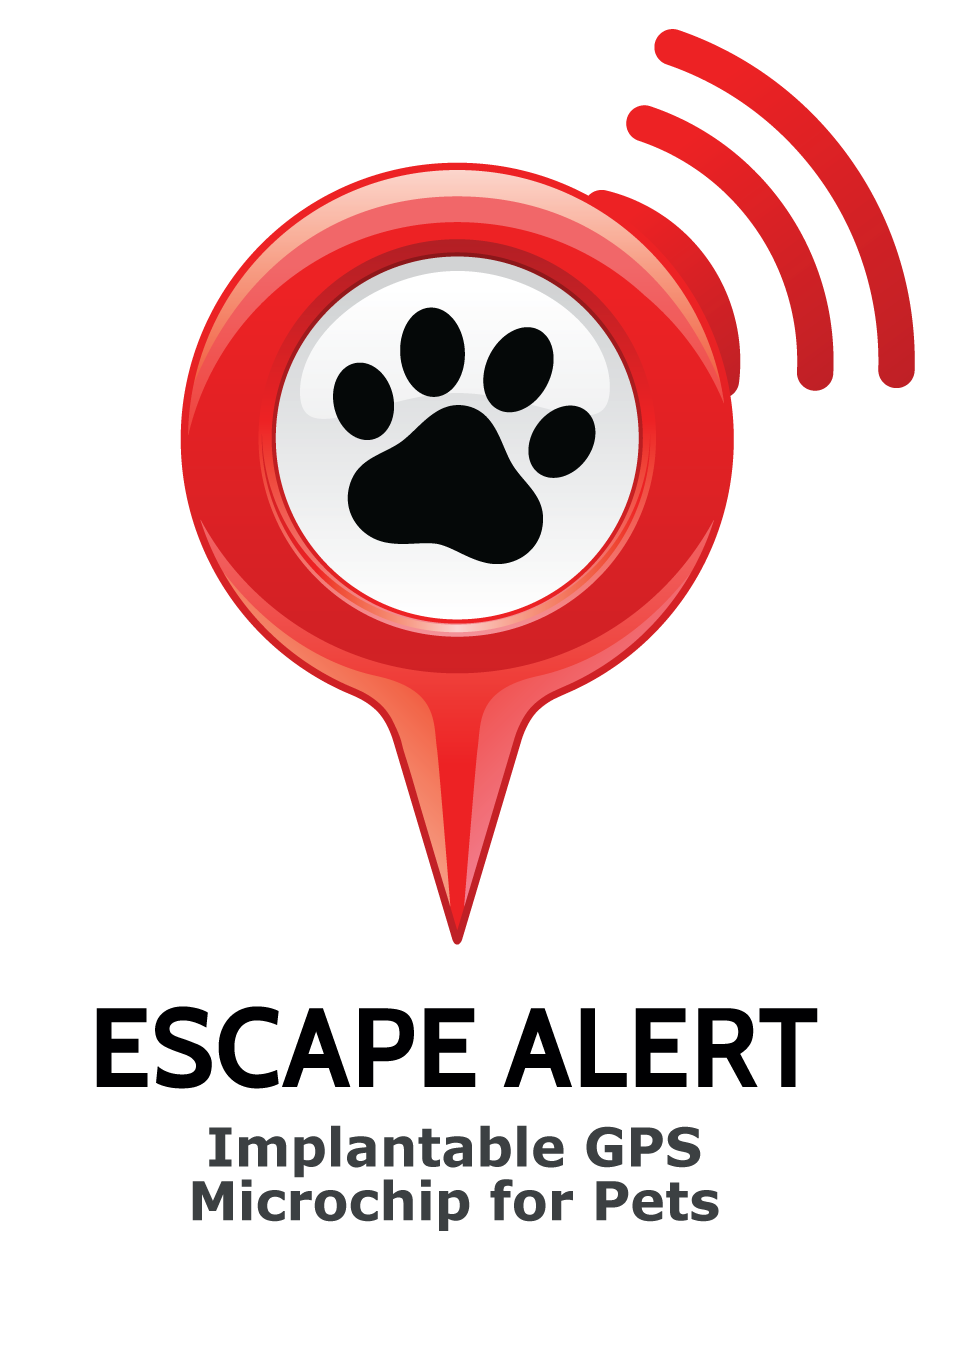 Implantable Microchip For Pets With Gps Tracking Patent